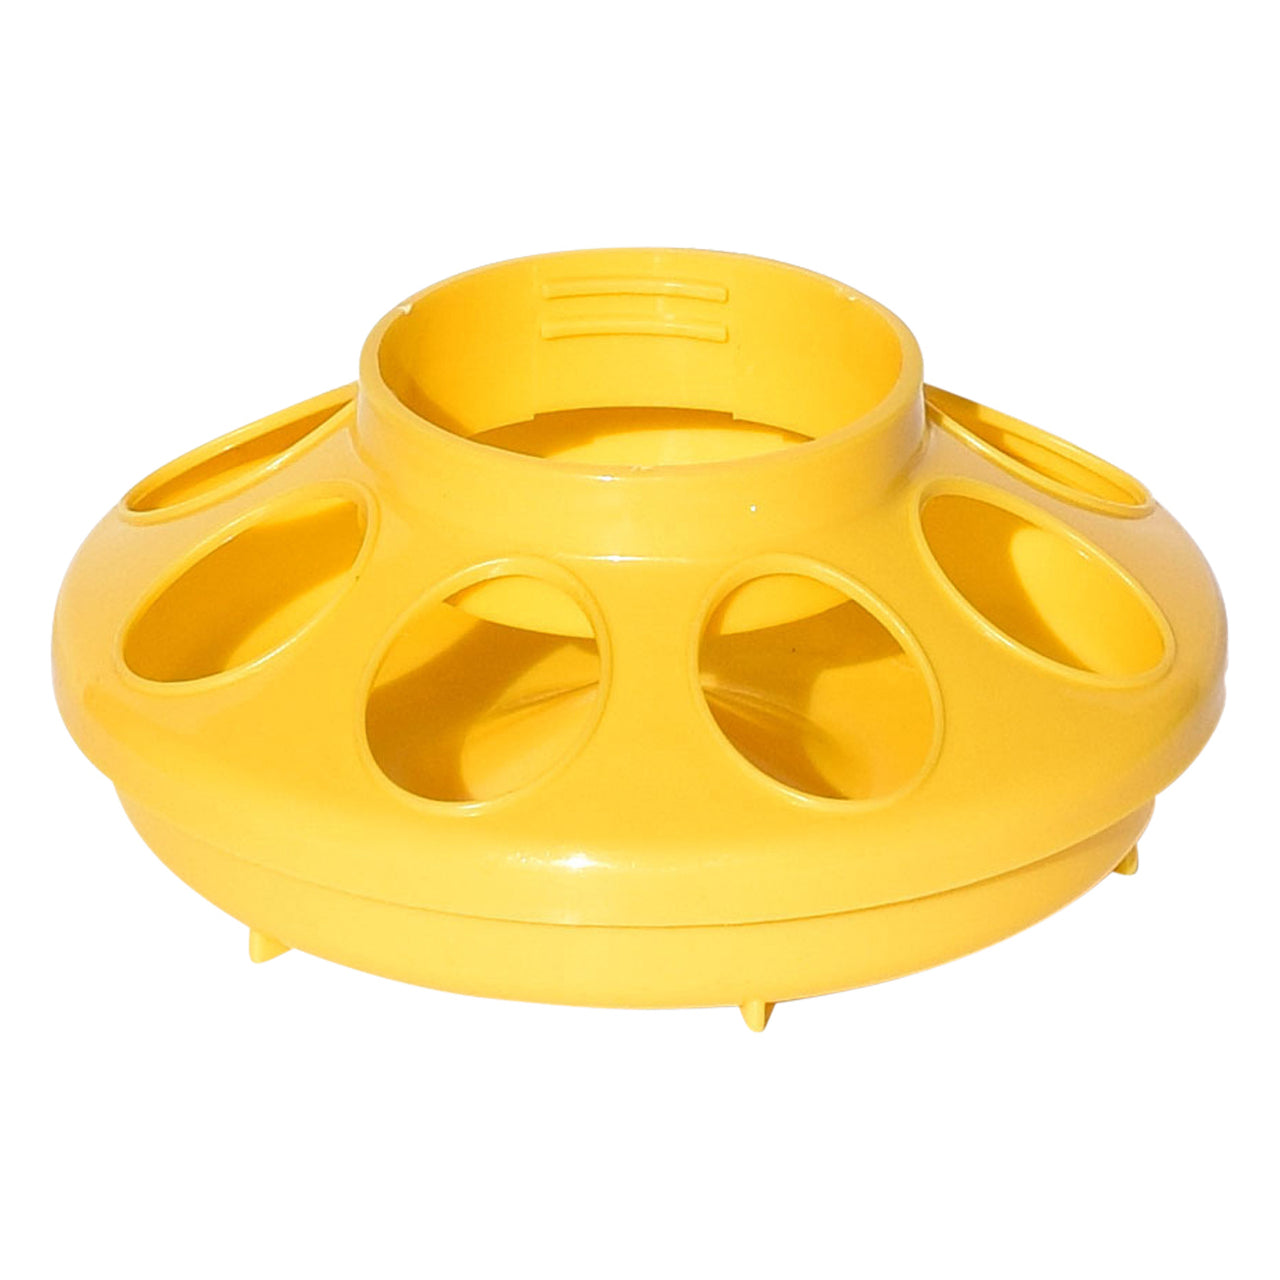 Tuff Stuff Enclosed Poultry Feeder 2 Lbs Bases (Yellow) - Plastic Poultry Feeders Tuff Stuff - Canada